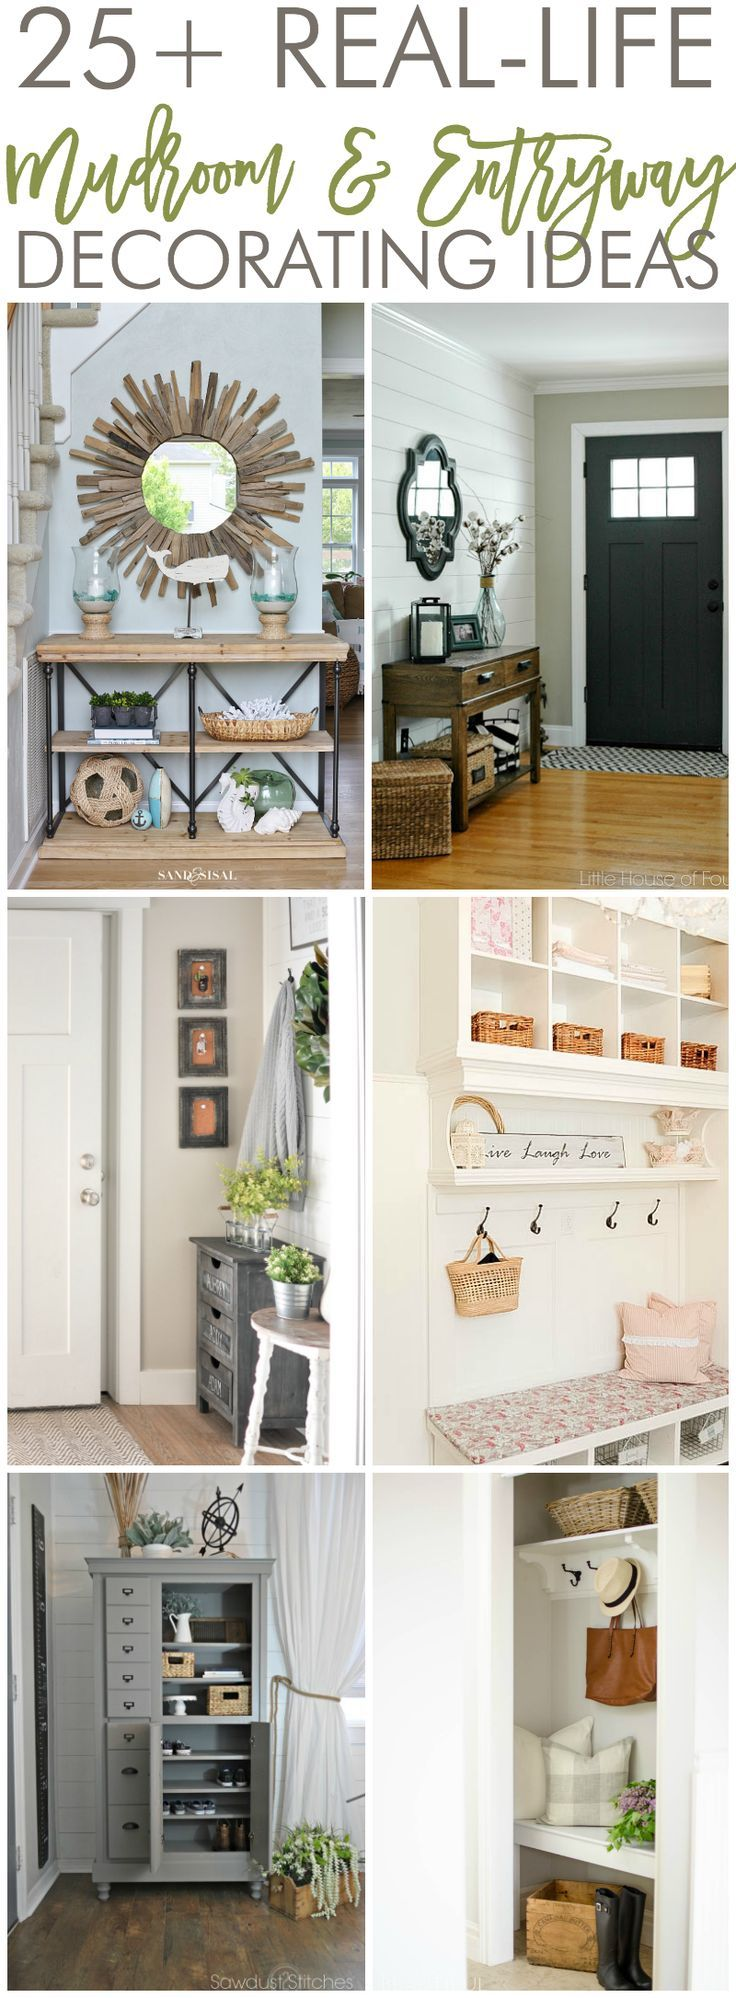 25 real life mudroom and entryway decorating ideas - Entryway Decor